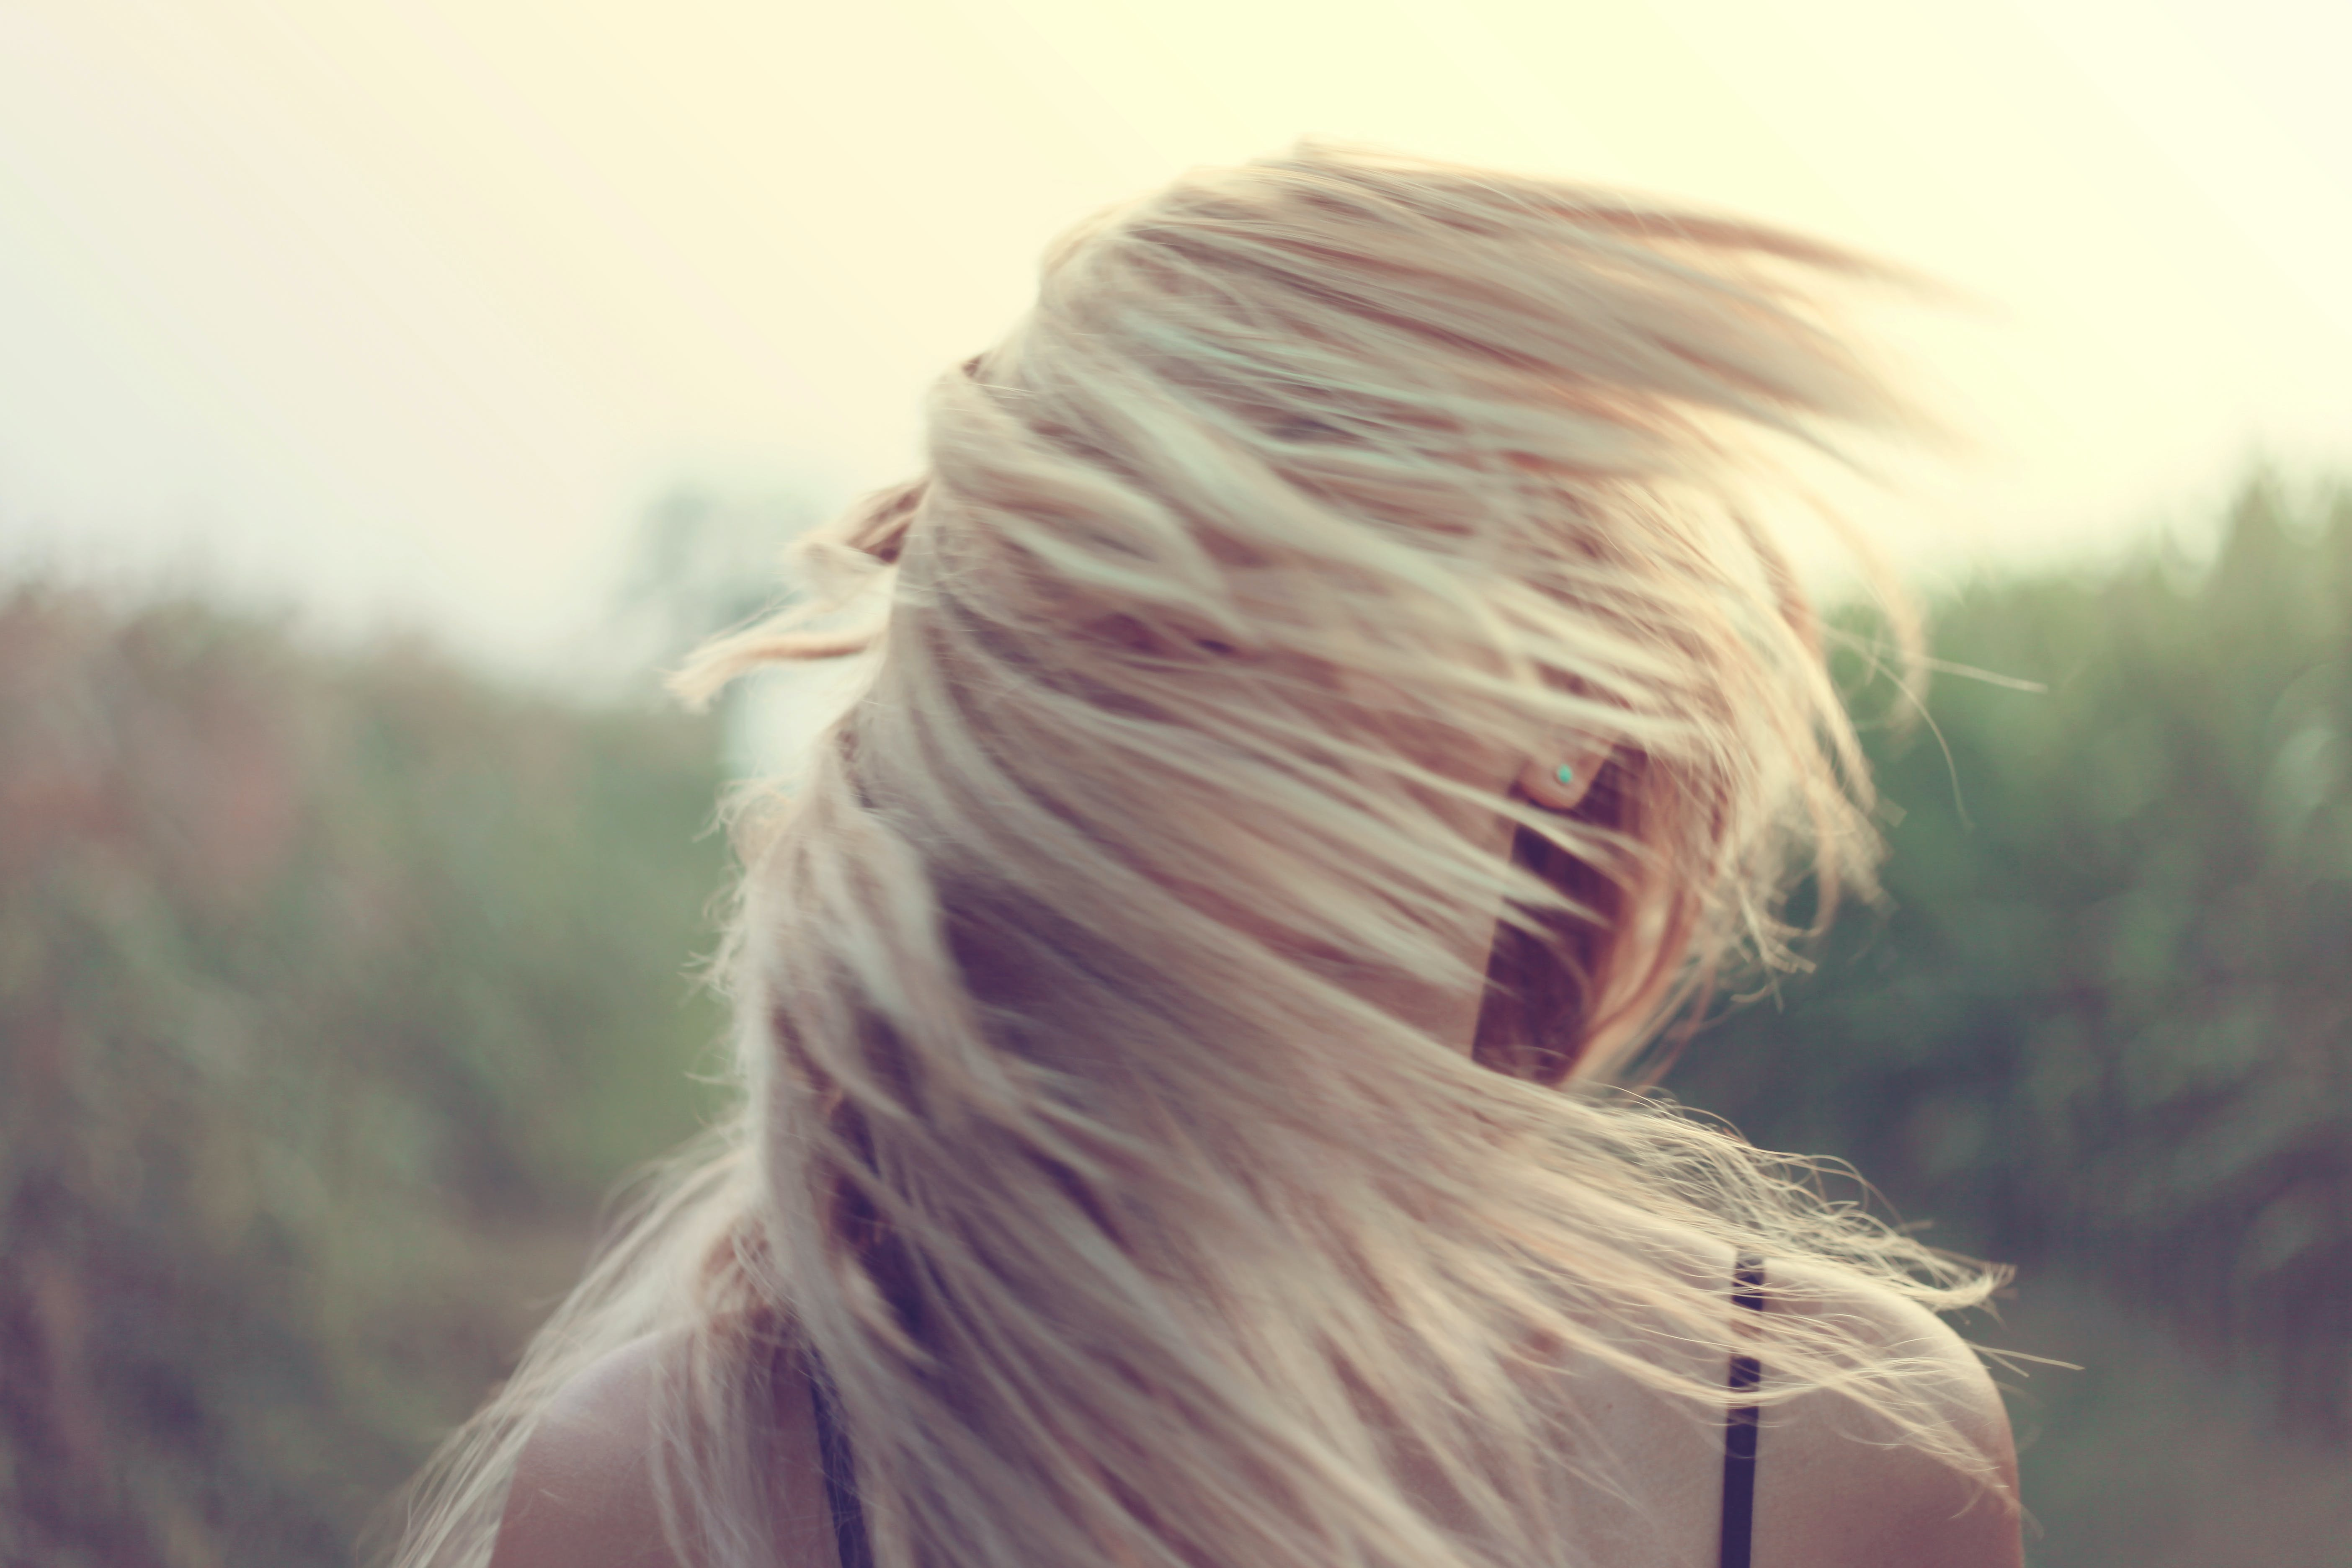 Free stock photo of person, woman, girl, blonde